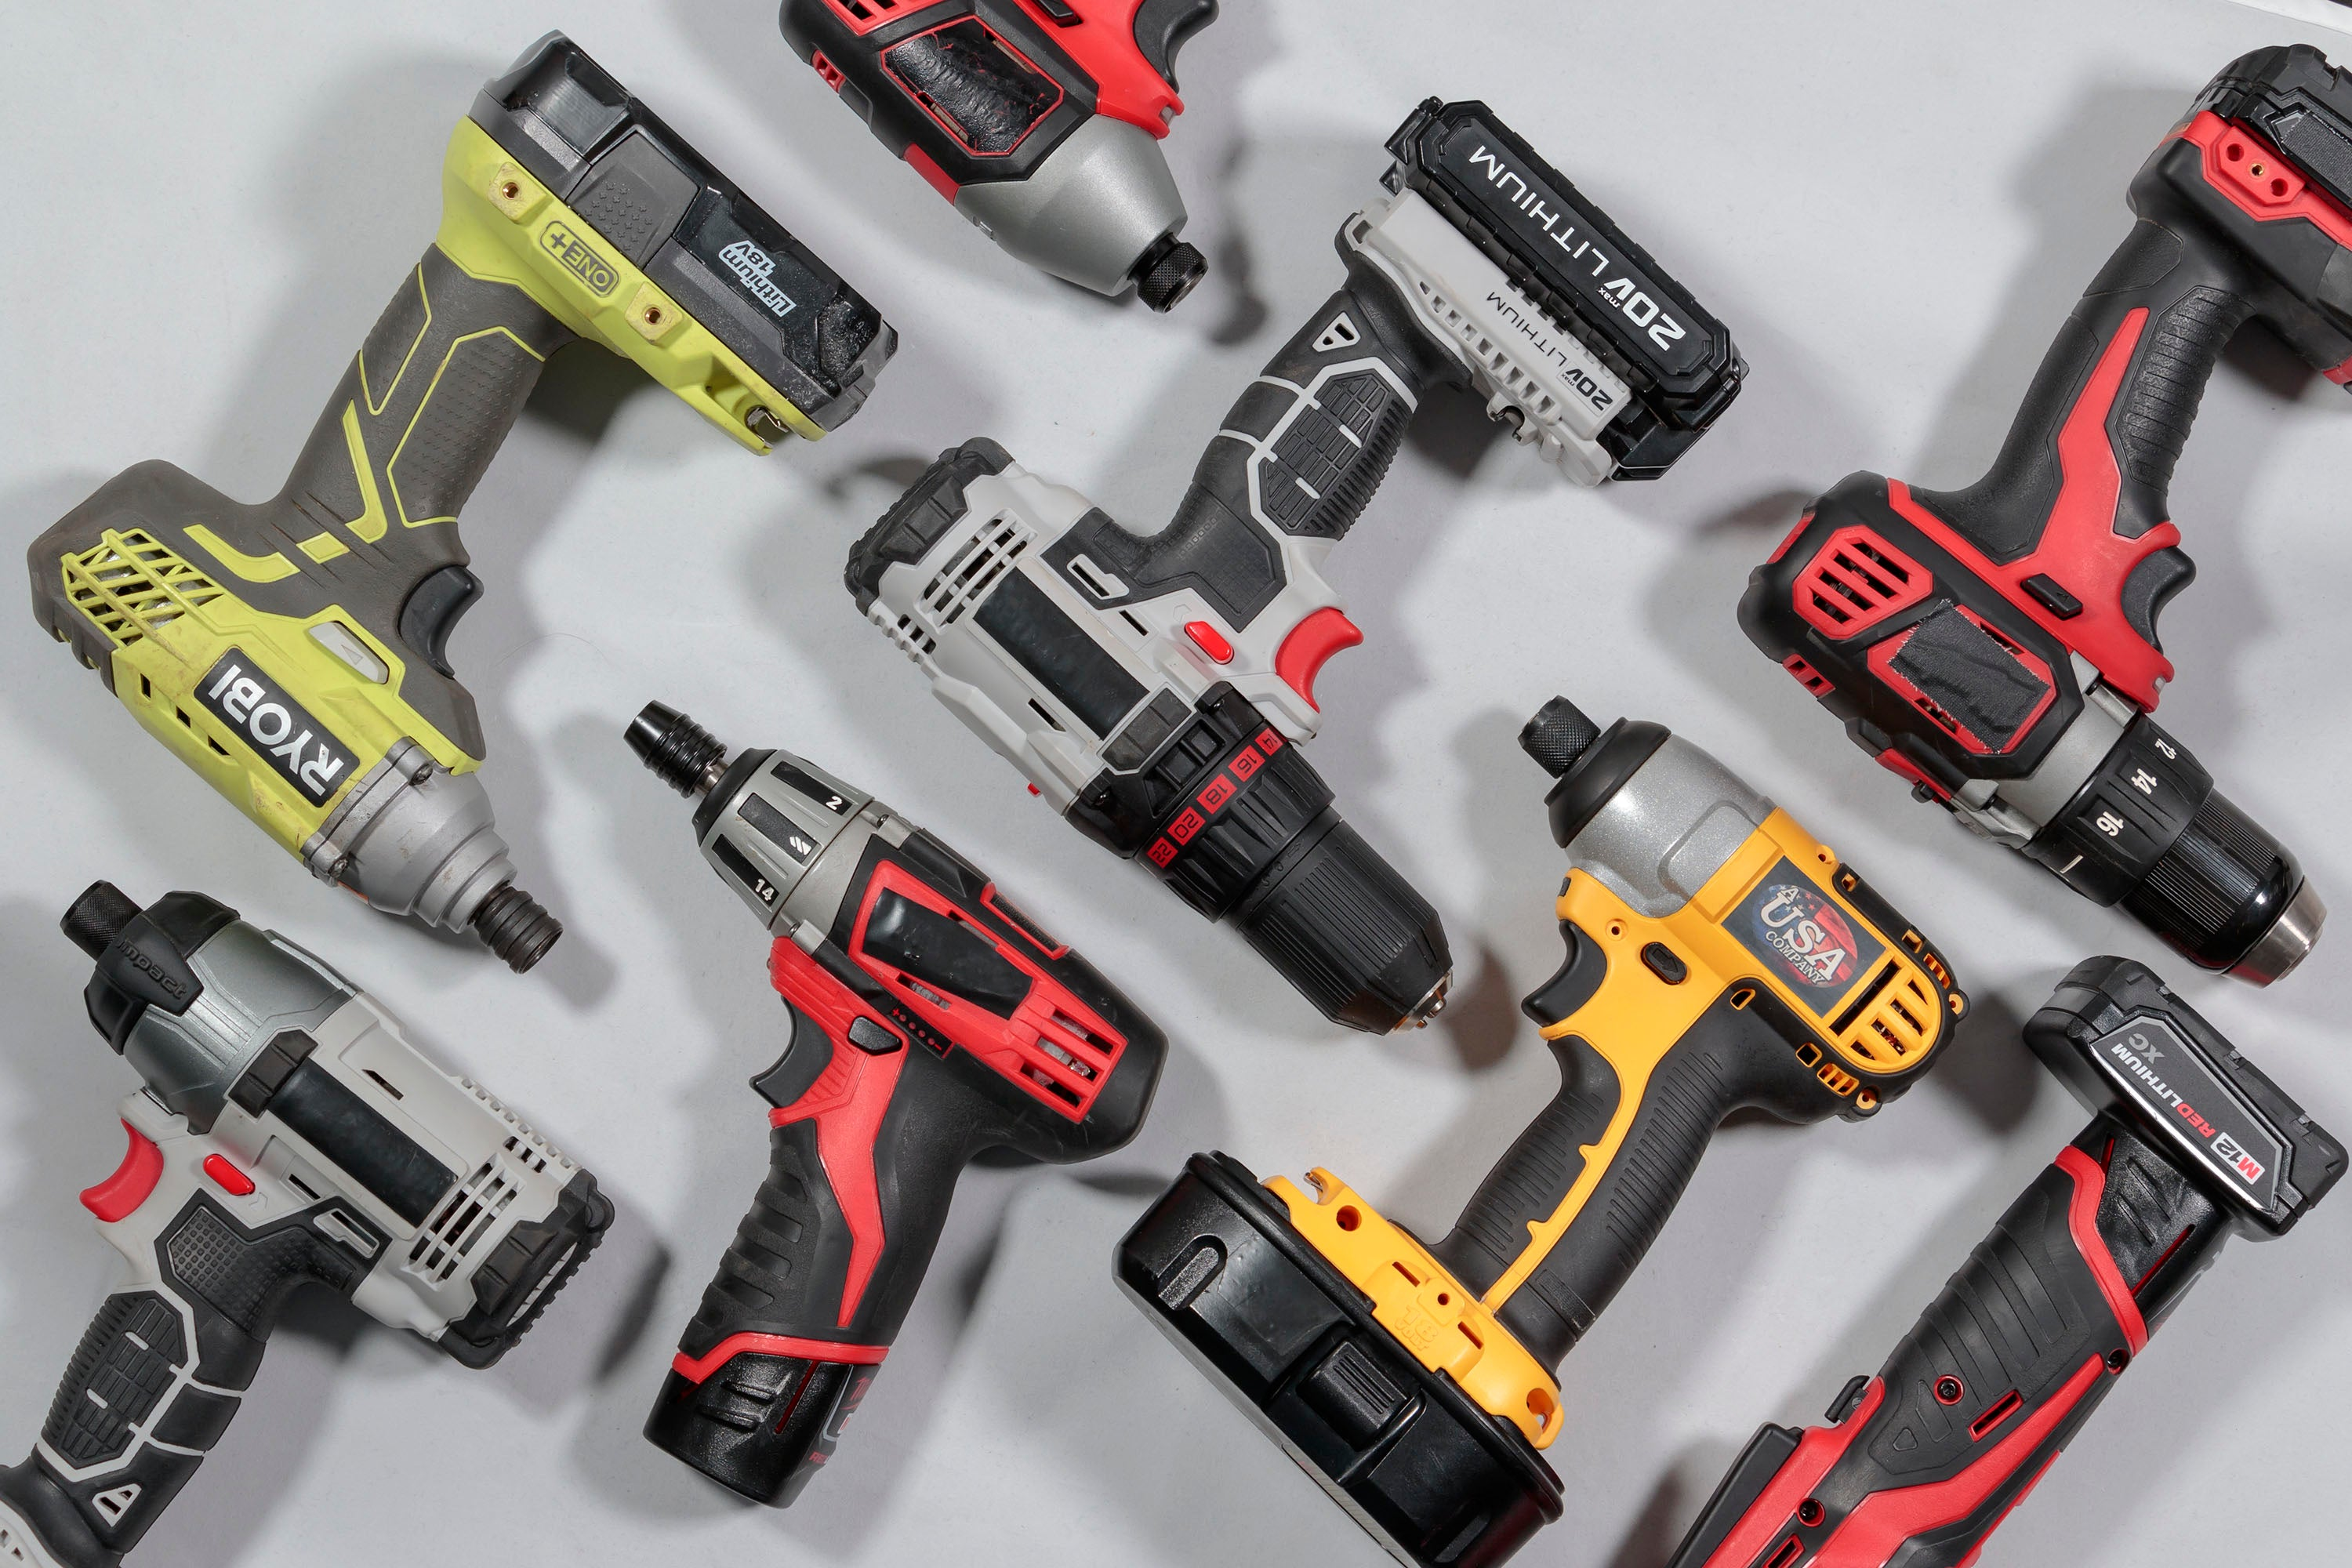 """What Drill Is Best for Me?"" What to Consider When Buying a Cordless Drill"